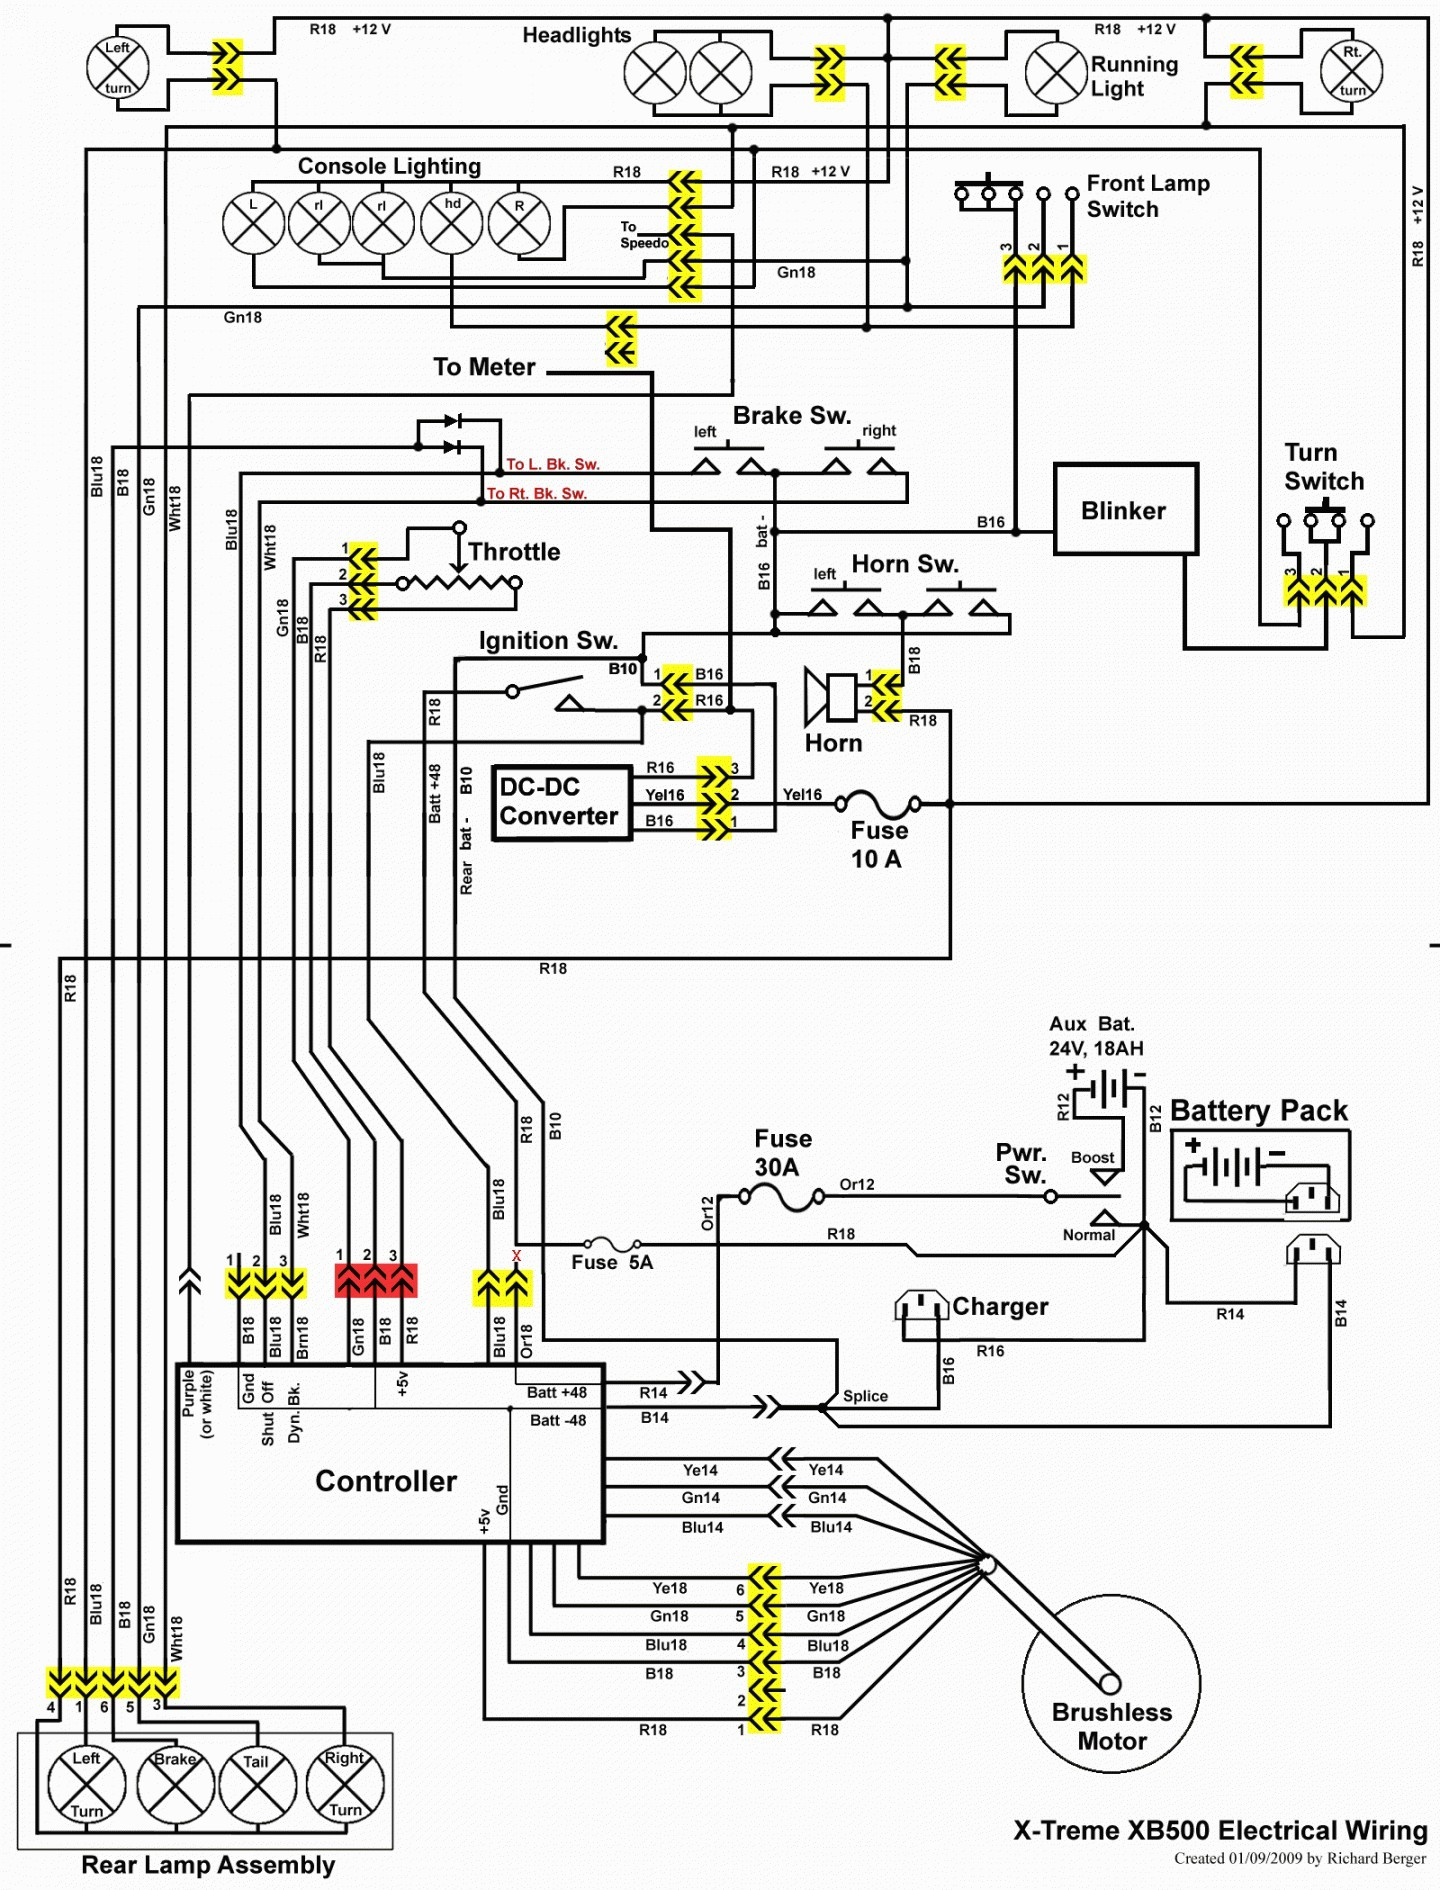 49cc Scooter Cdi Wiring Diagrams | Wiring Diagram on